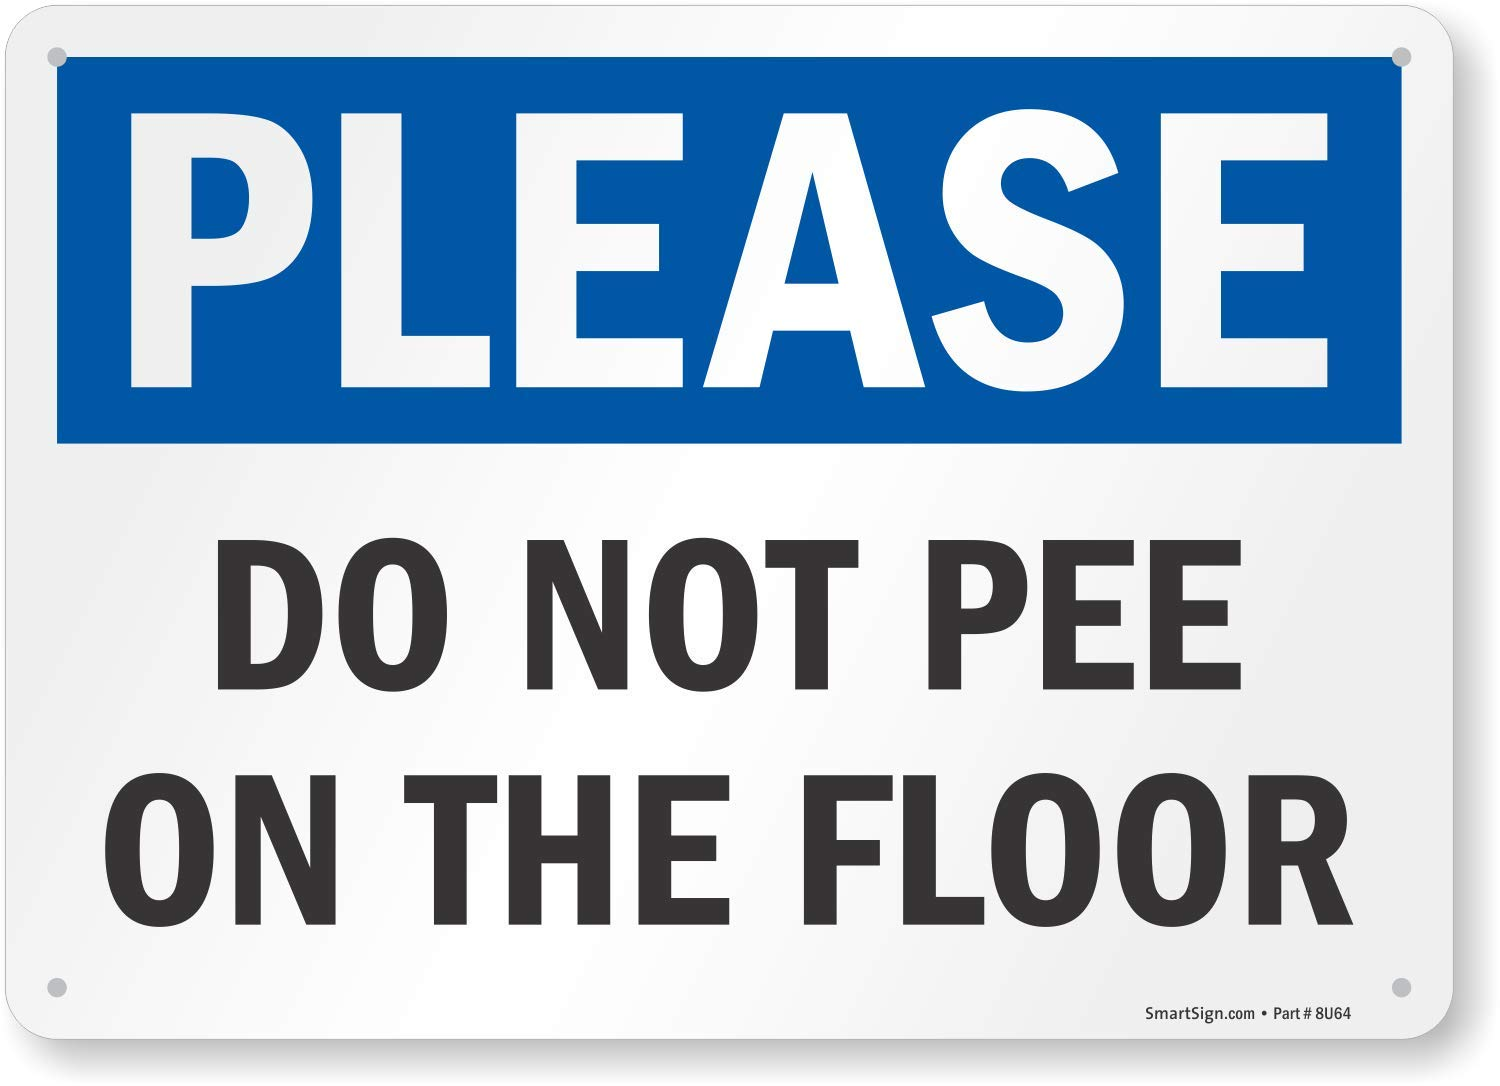 10 x 14 Plastic Do Not Pee on the Floor Sign by SmartSign Please